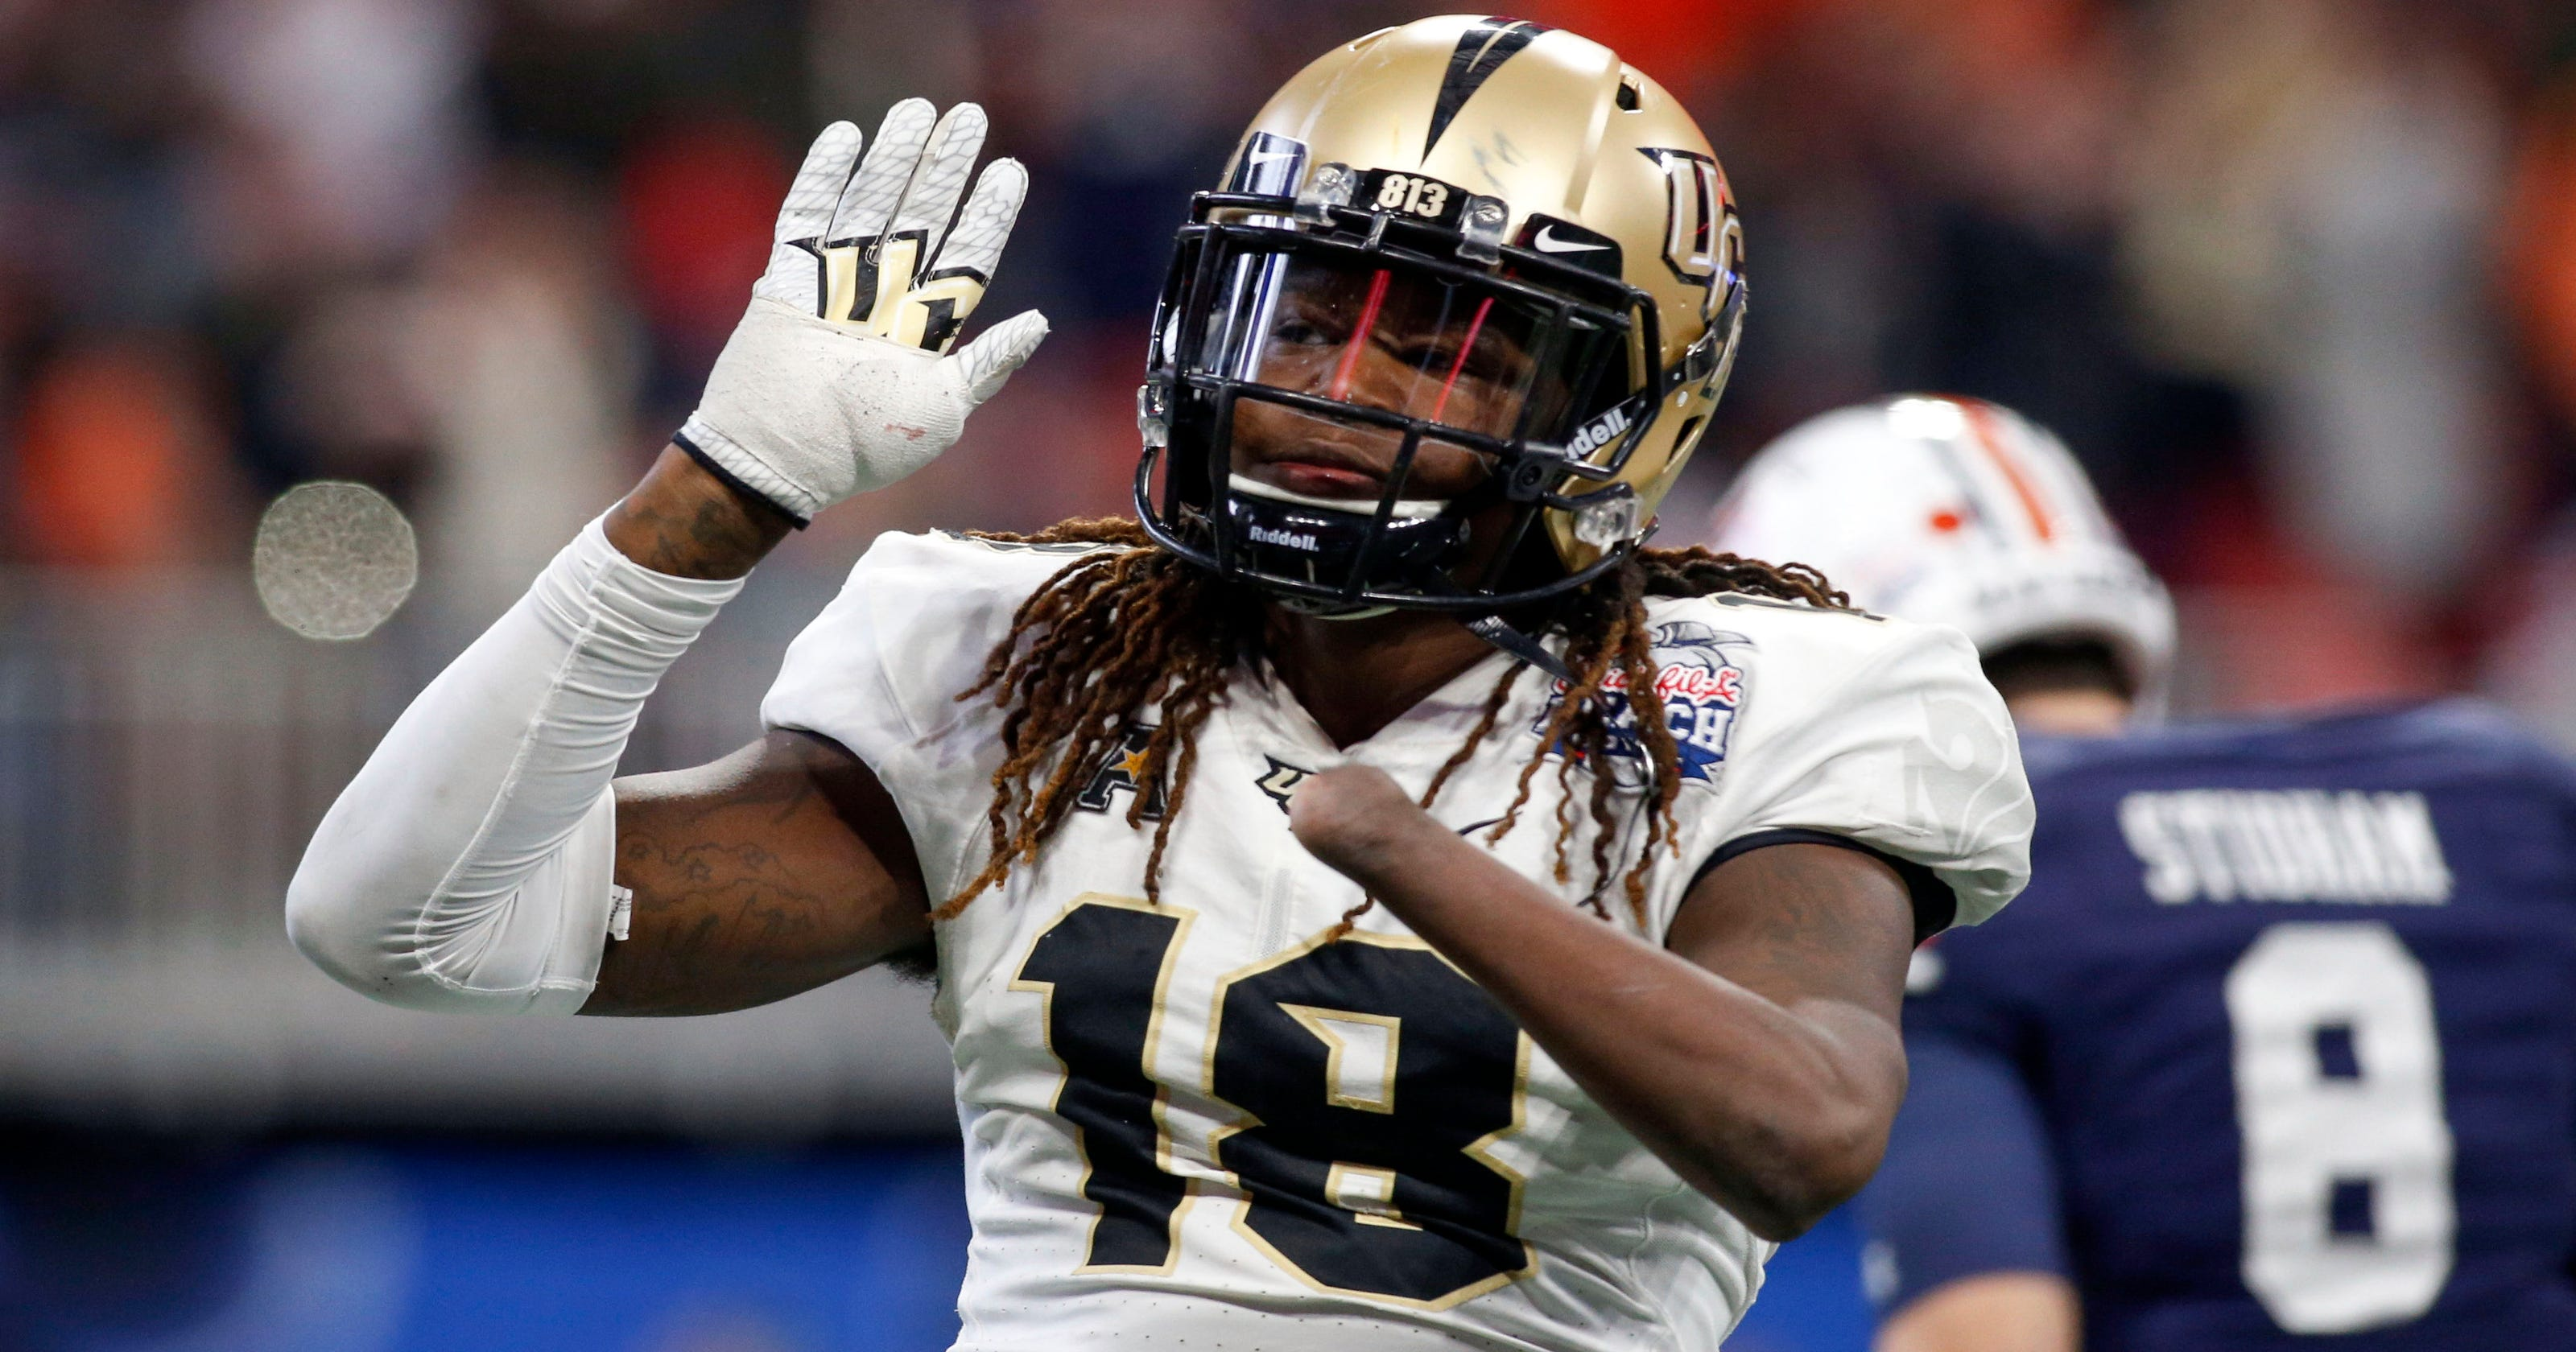 772c88ace One-handed NFL prospect Shaquem Griffin embraces the opportunity to prove  doubters wrong -- again